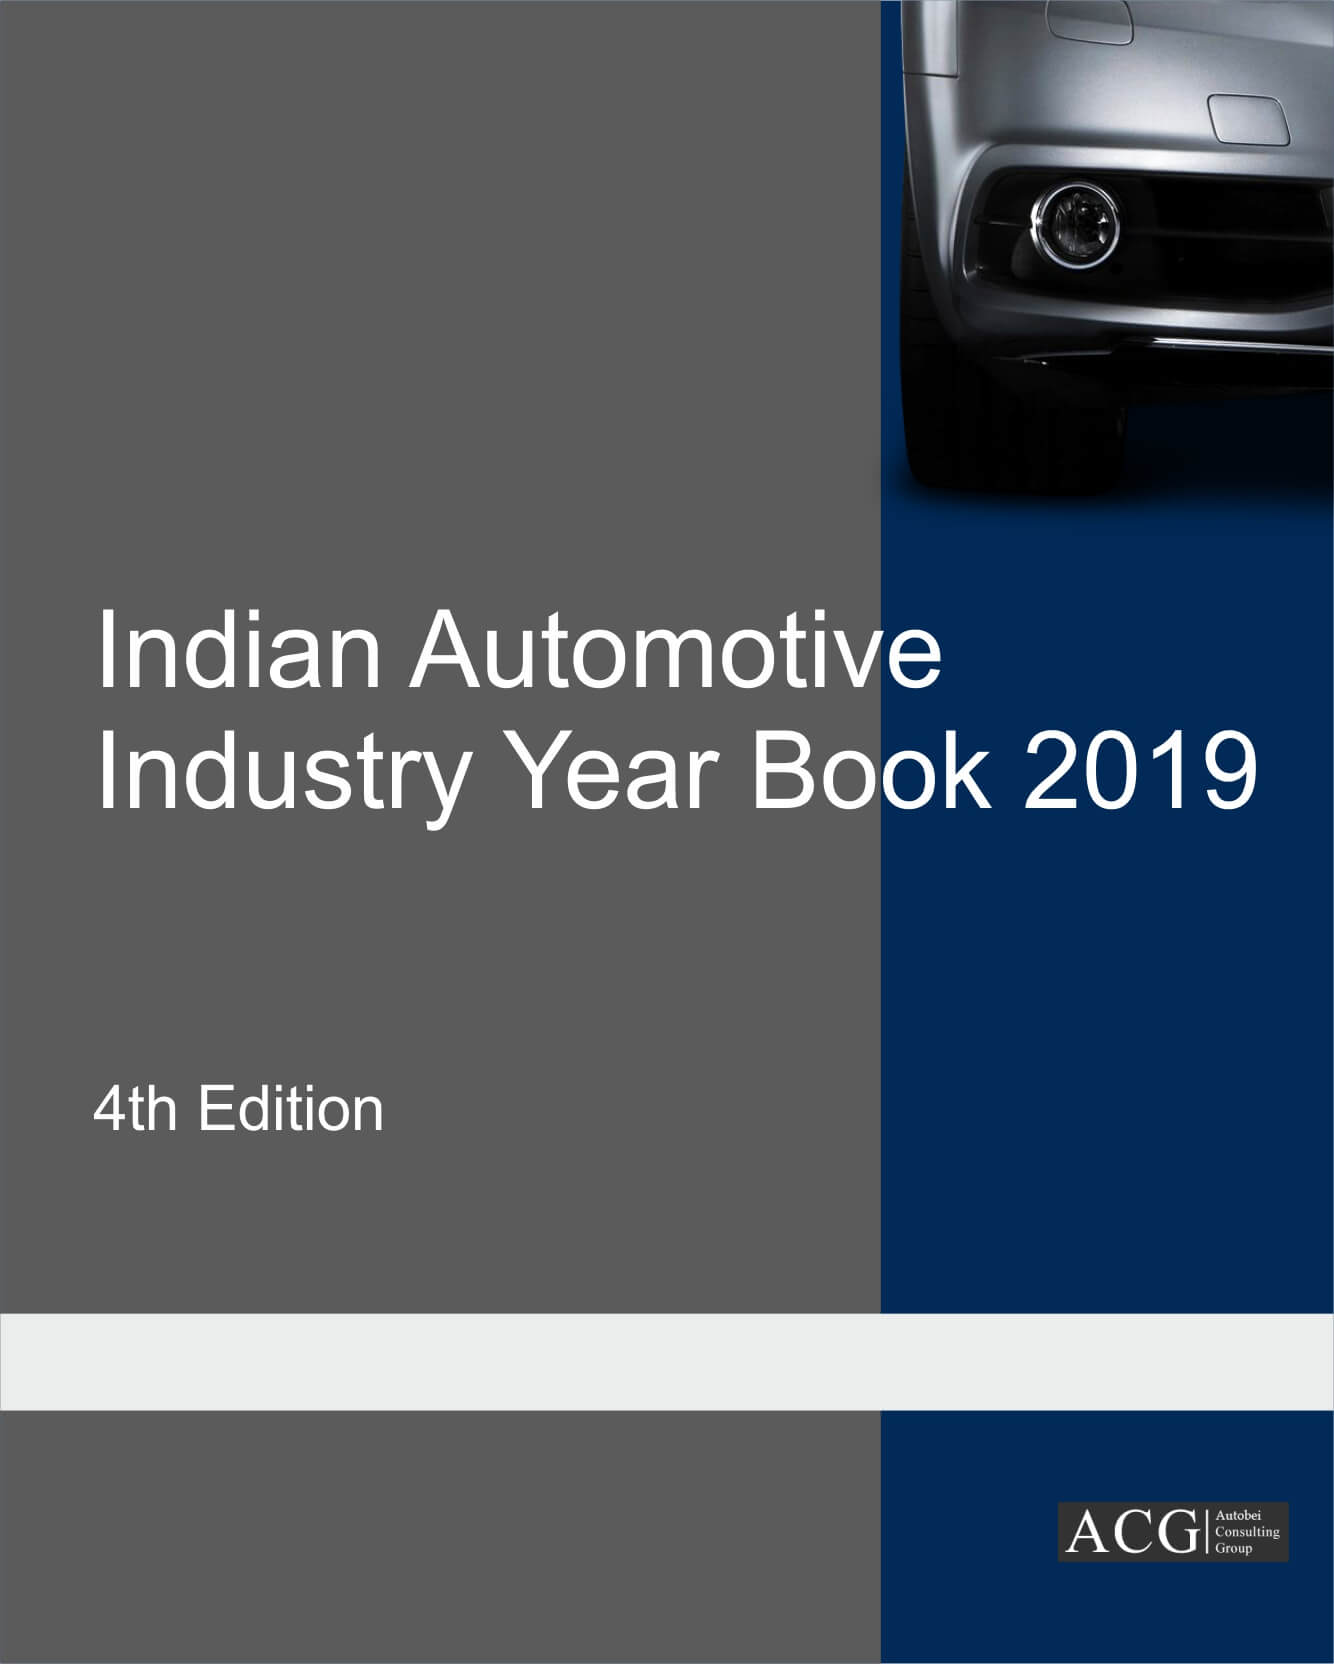 Indian Automotive Industry Year Book 2019